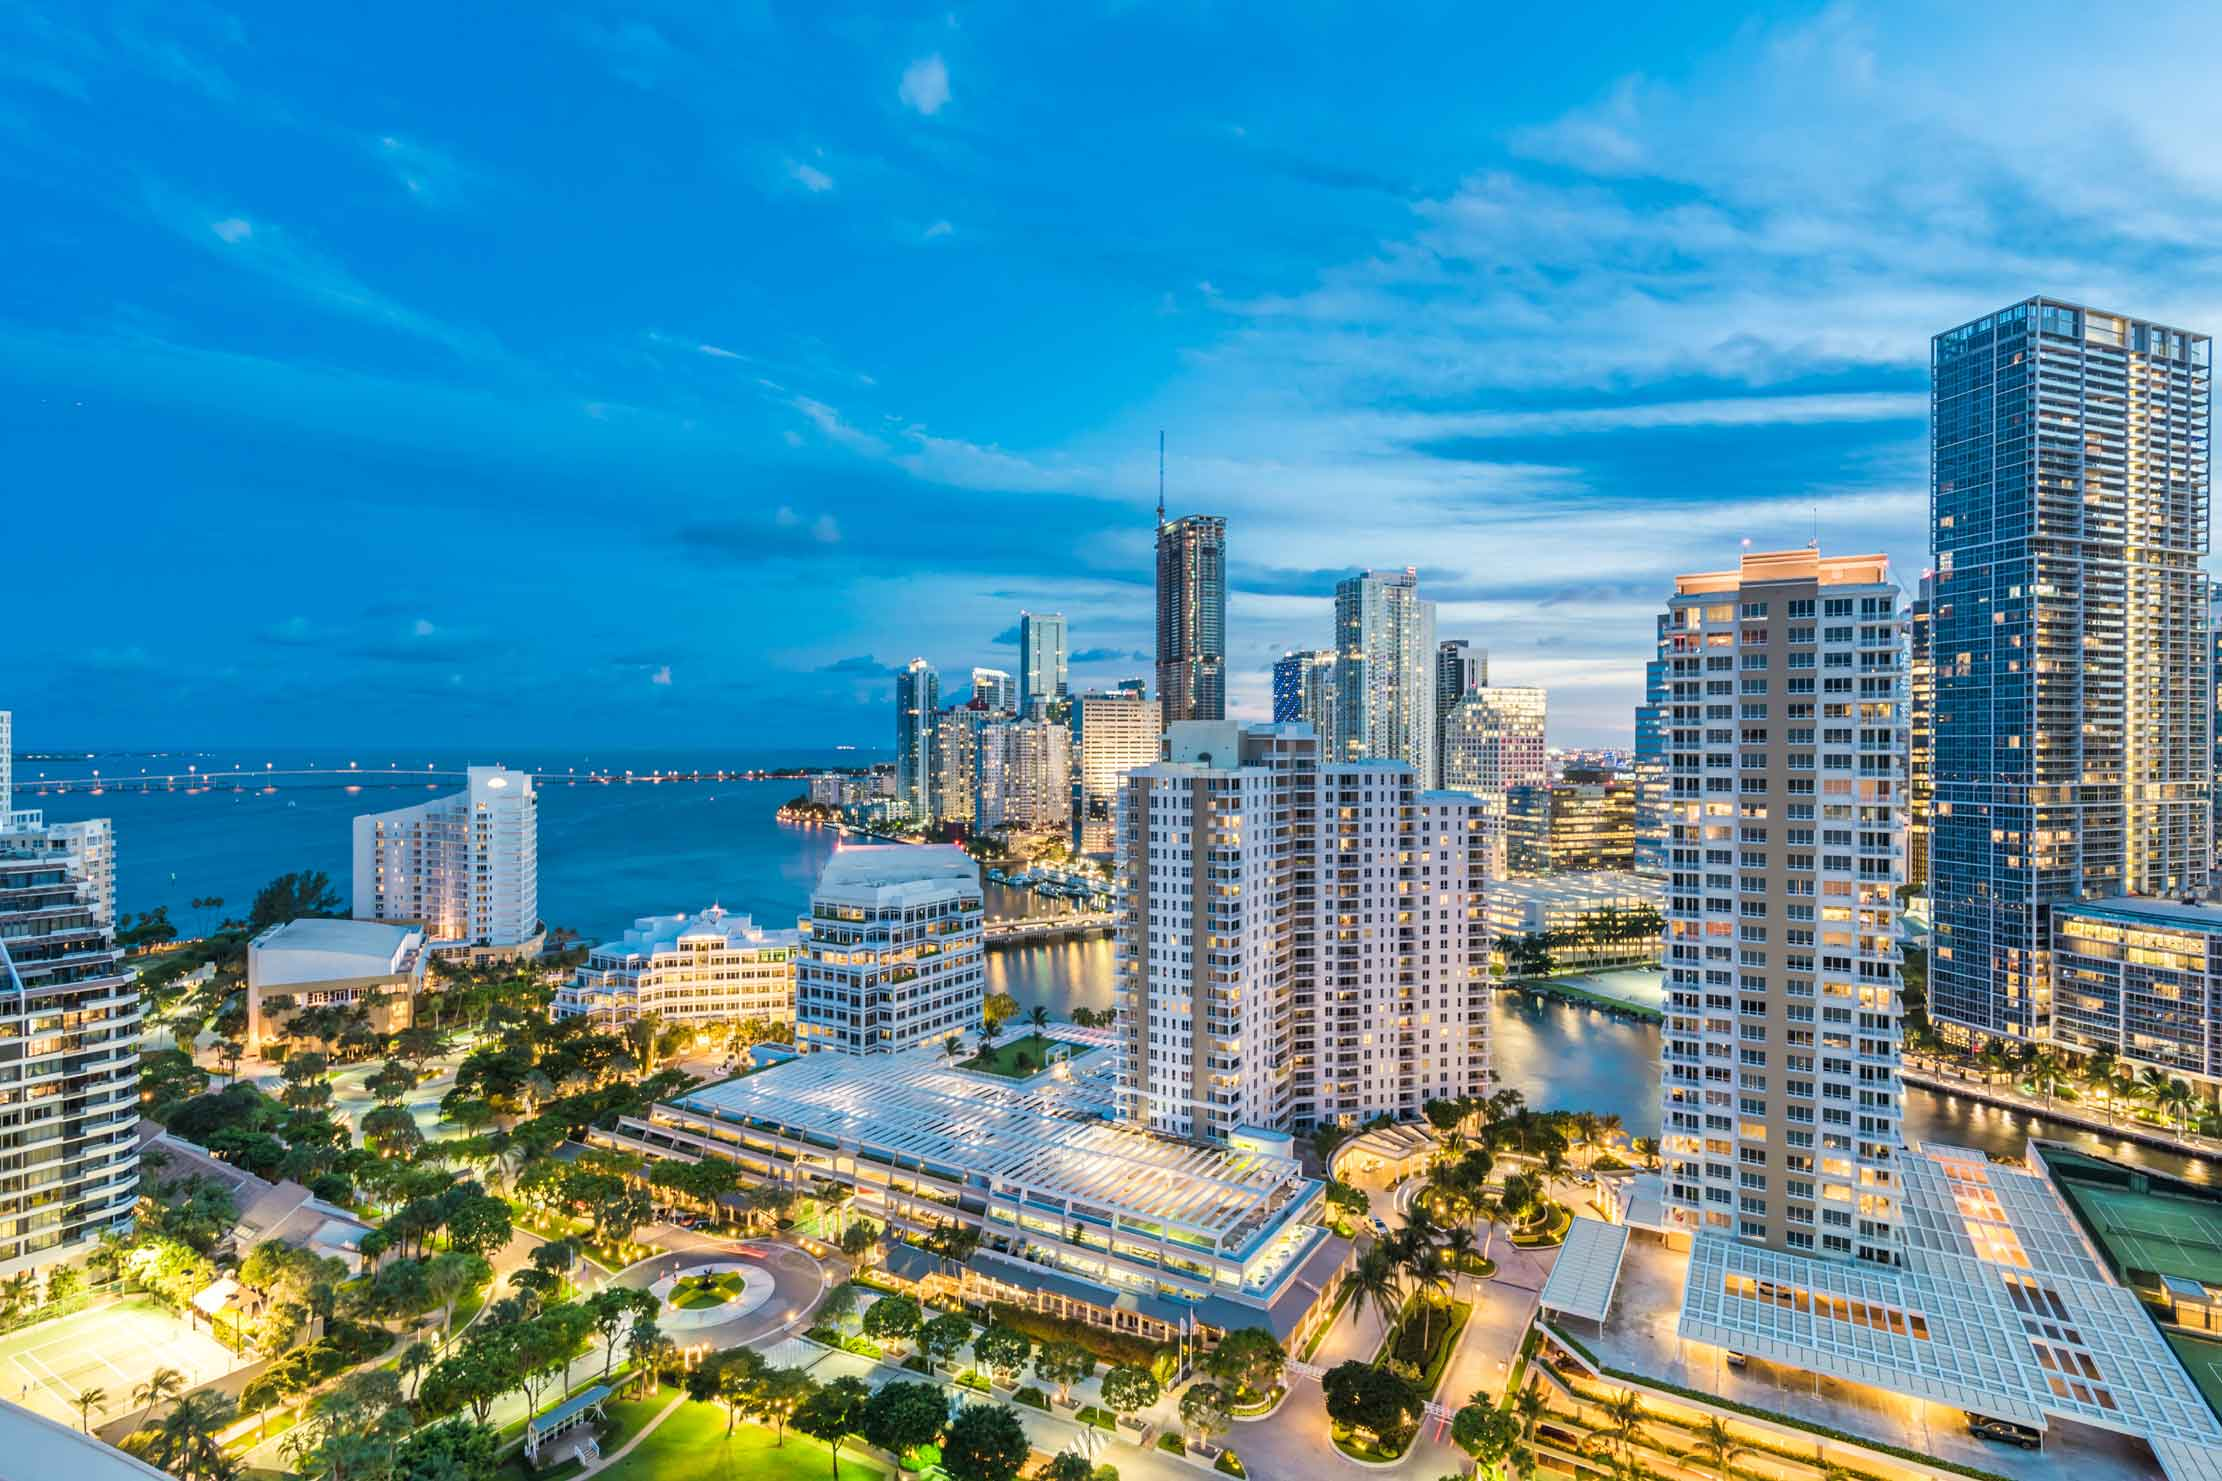 This desiger duplex on the exclusive island of Brickell Key overlooks downtown Miami, Biscayne Bay, and the Atlantic Ocean.